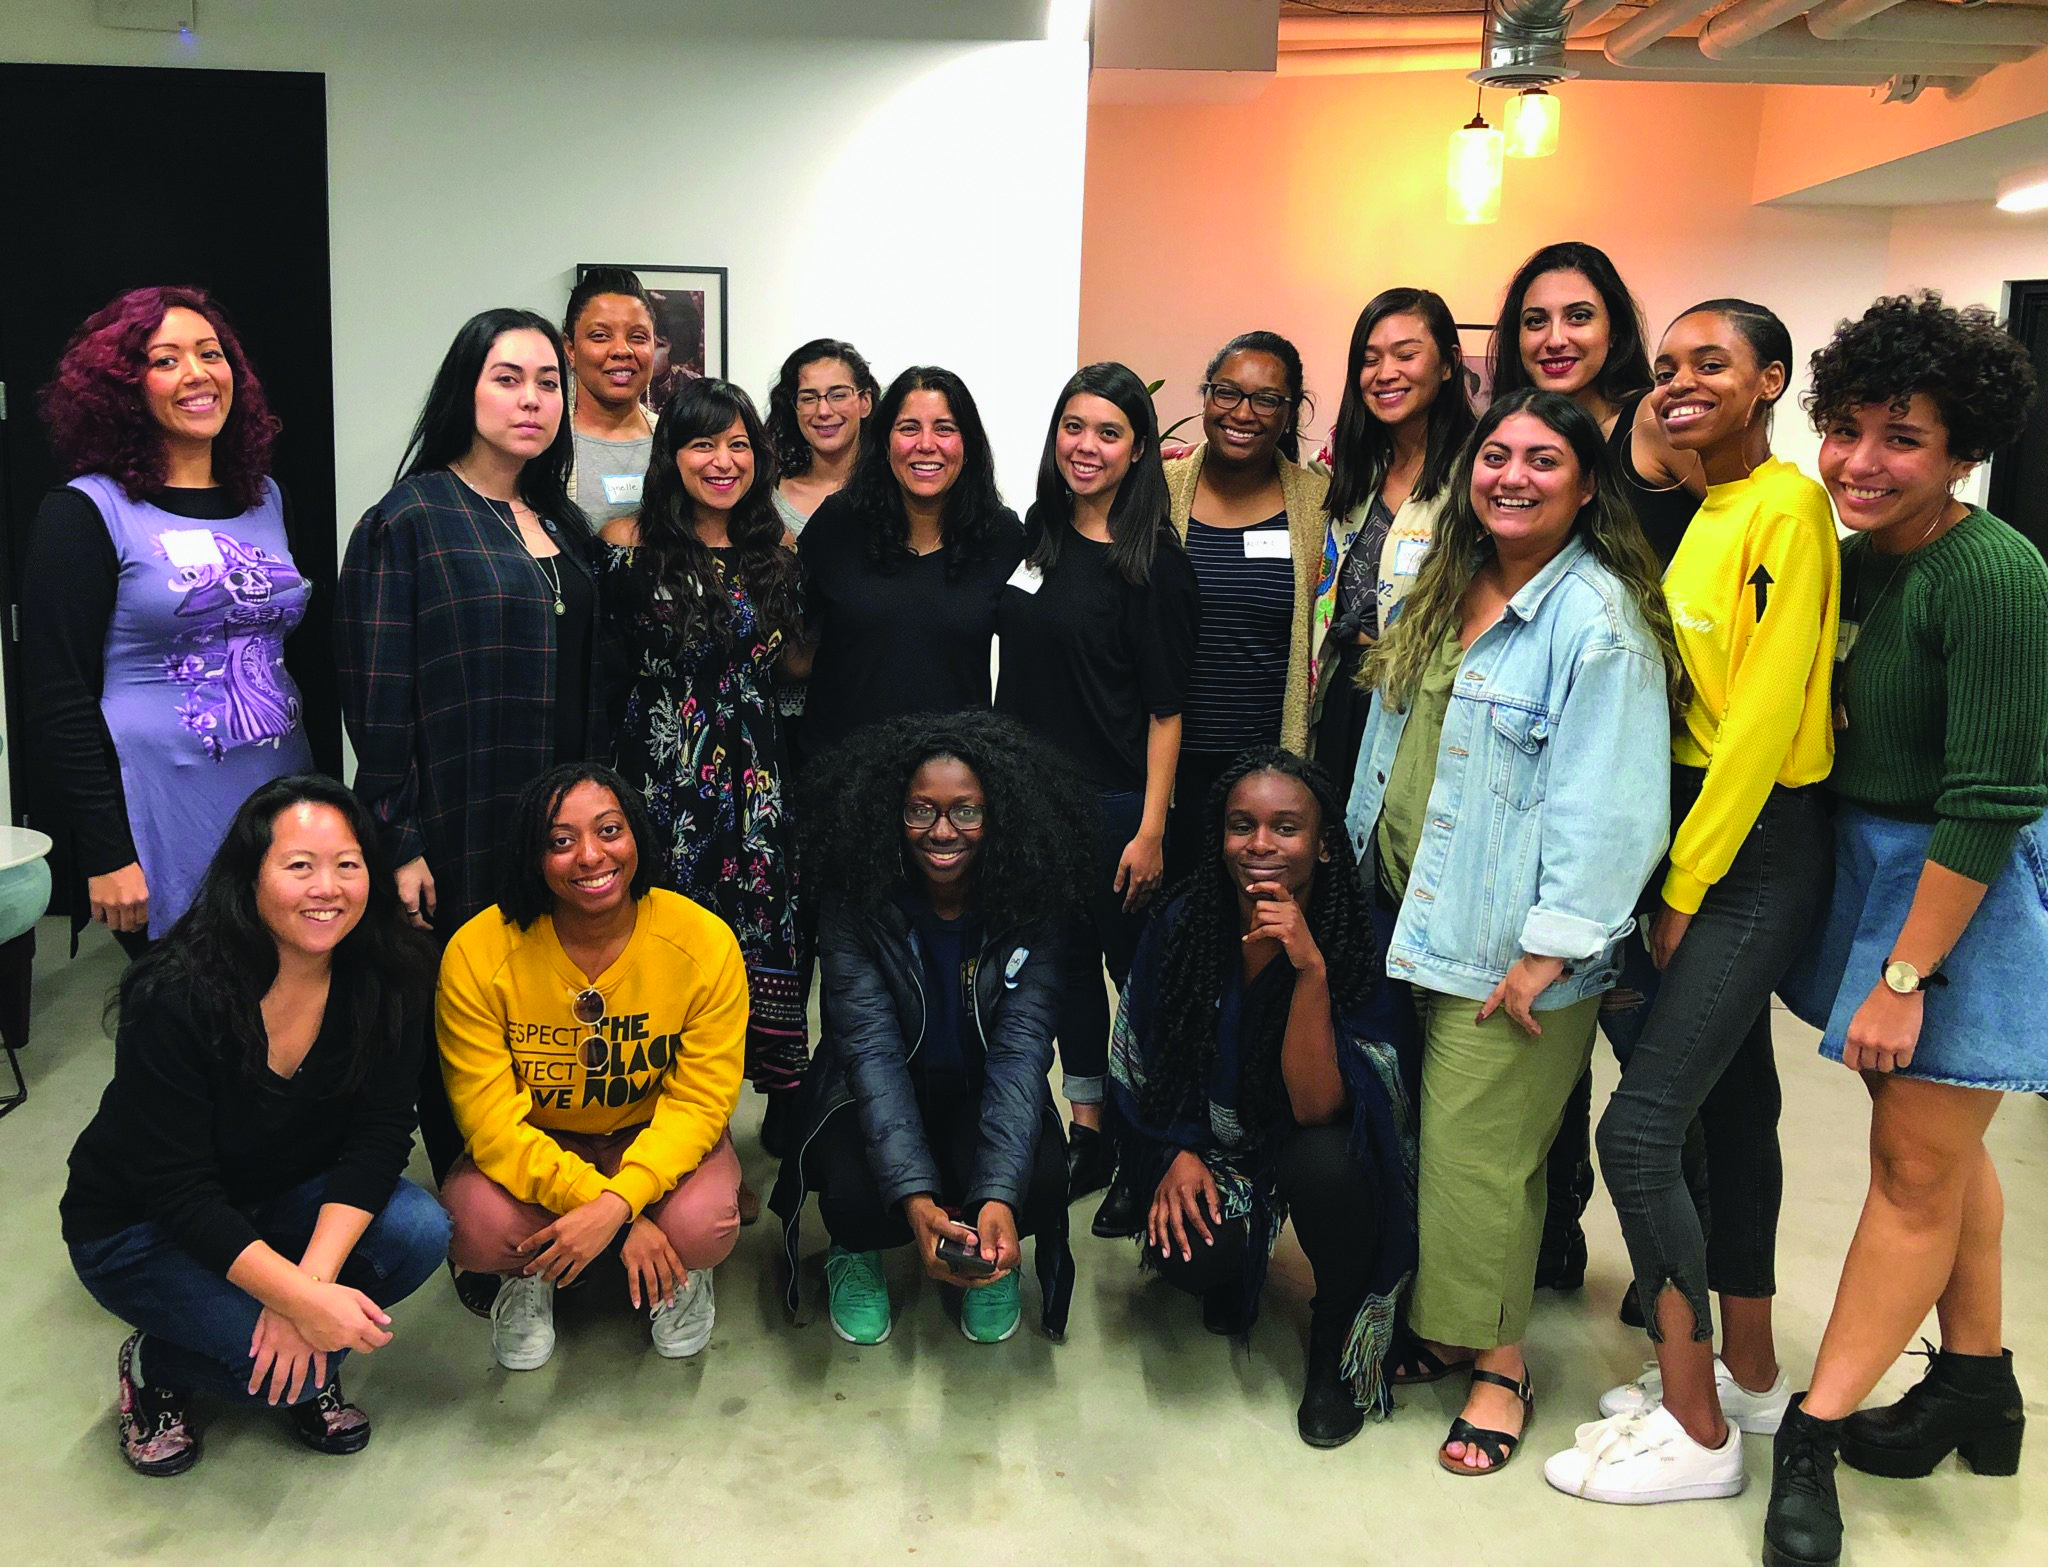 Seventeen young women of color smile in a posed group photo.